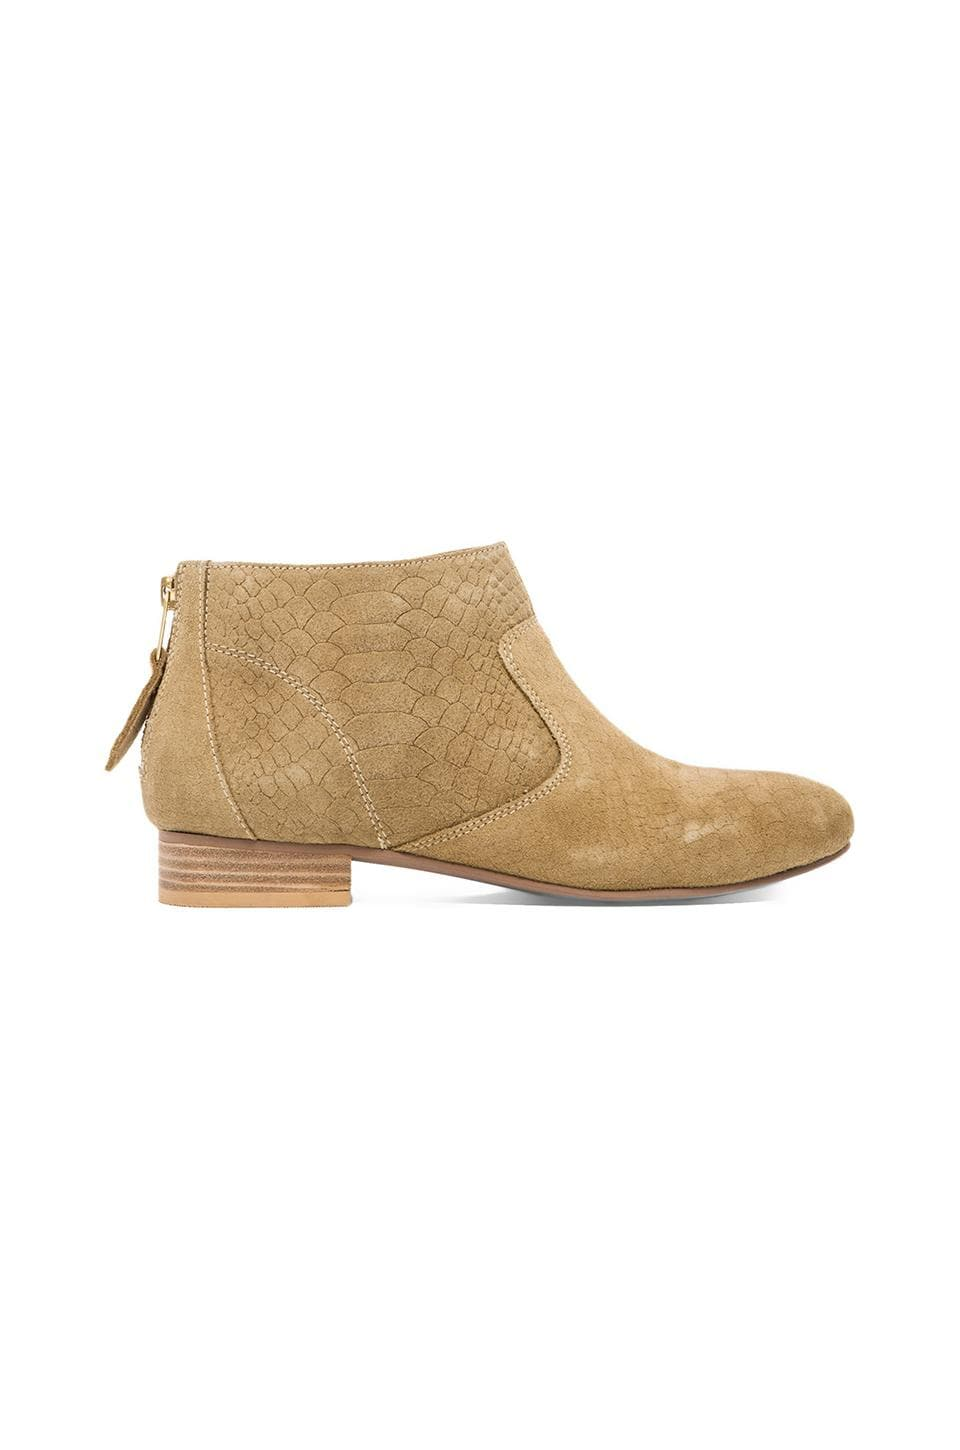 Seychelles All I Do Boot in Taupe Exotic